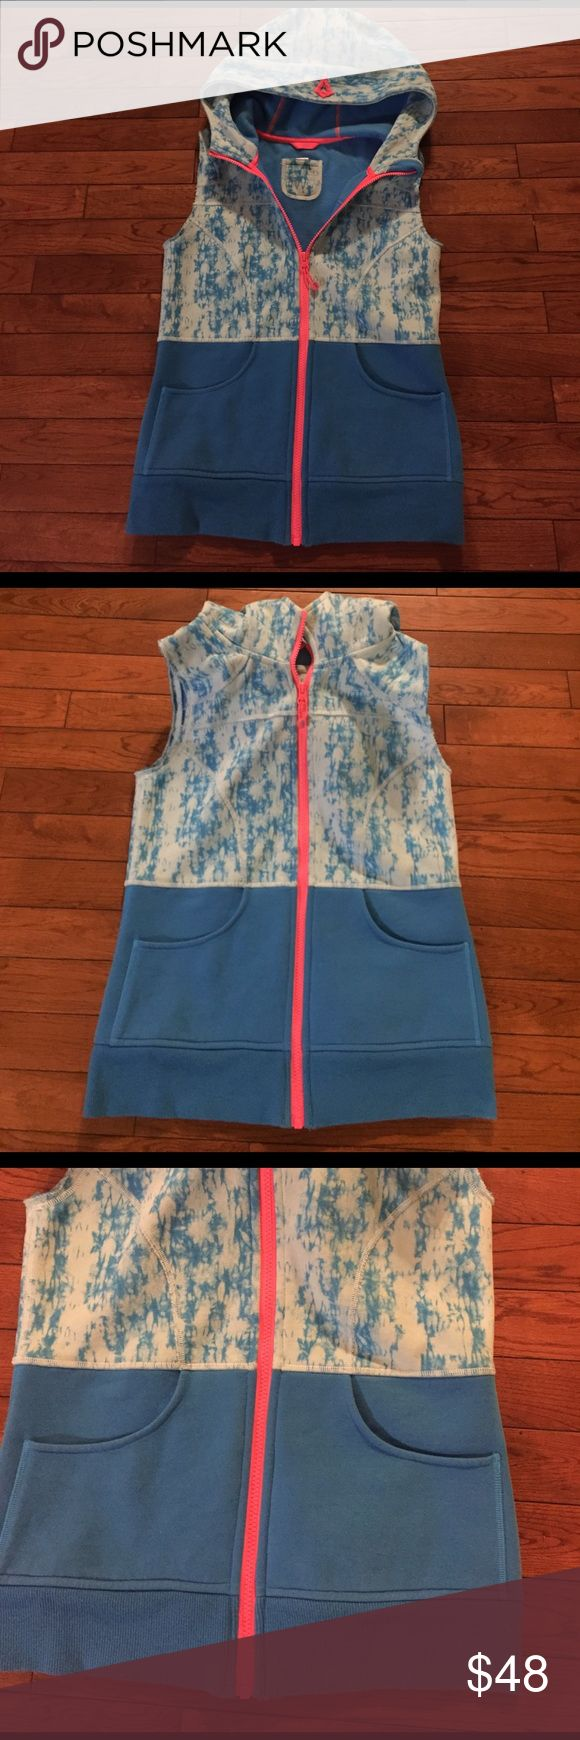 • IVIVVA • lululemon kids brand vest Gently worn Ivivva (lululemon's children's line) vest. Worn once, excellent condition! Size 14. Also fits a woman's XS! Very thick & comfy! Awesome quality! Remember to bundle & save 15%! 💕 lululemon athletica Jackets & Coats Vests